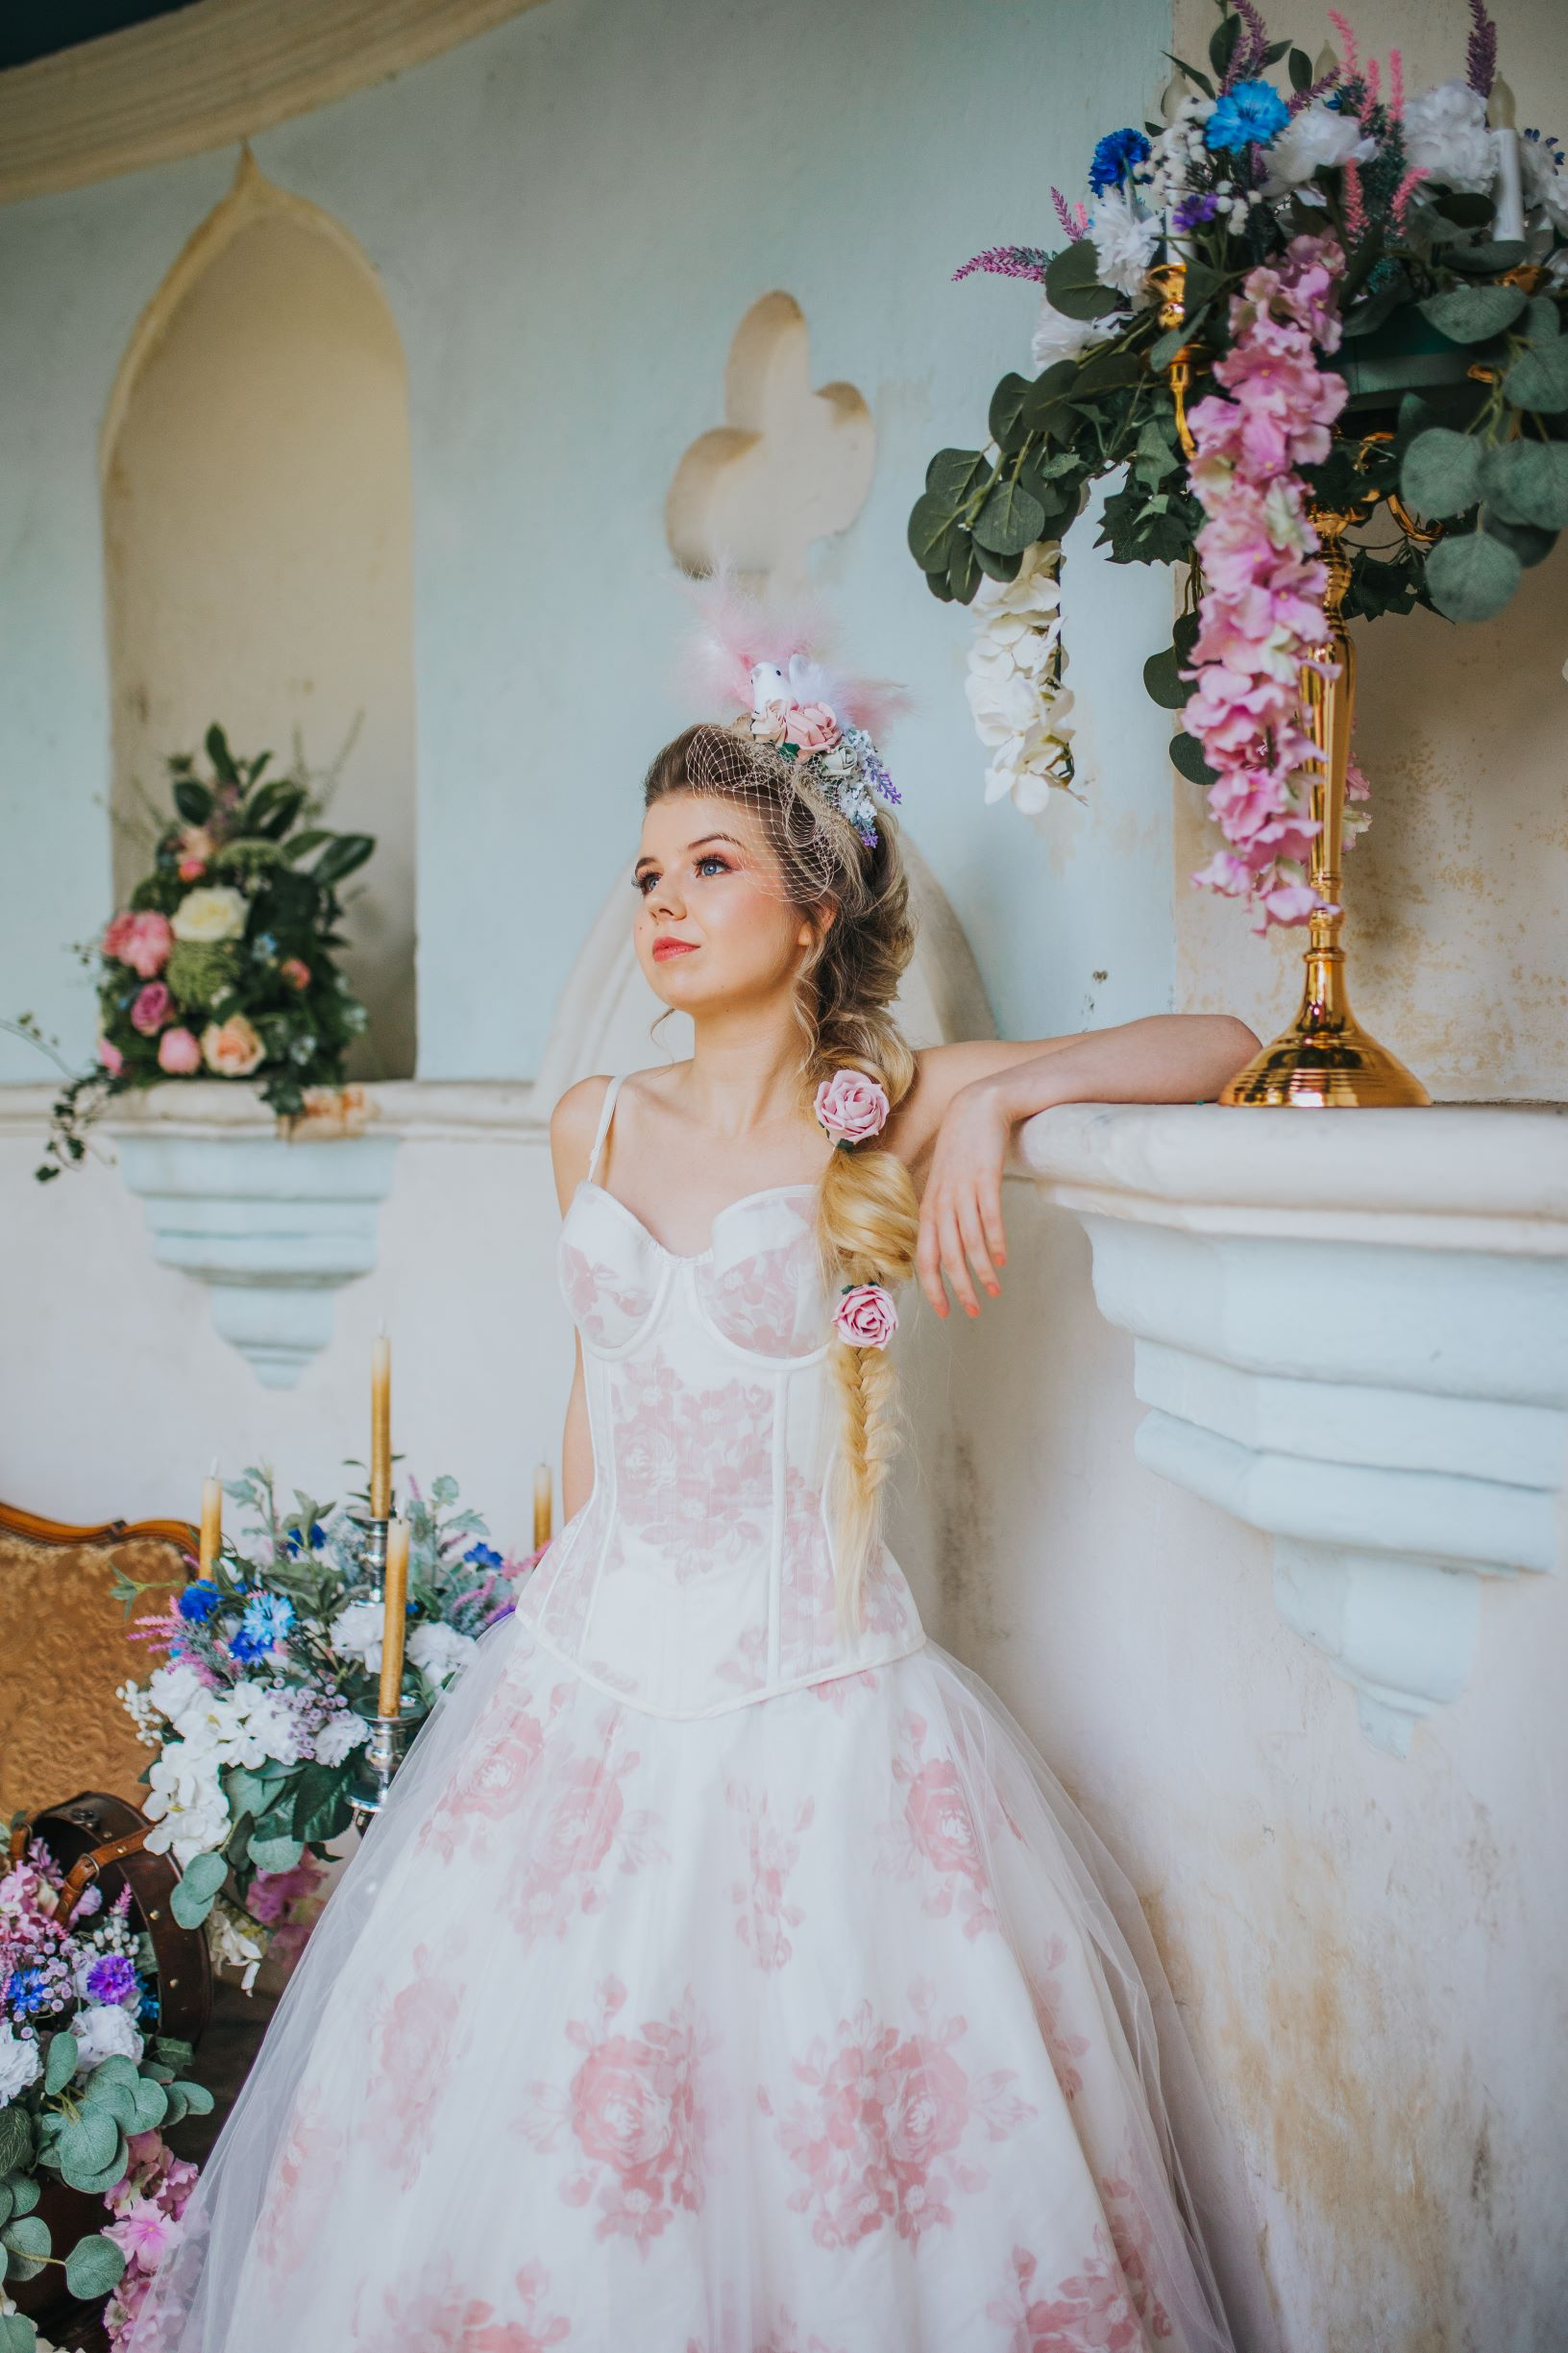 Whimsical wedding- Laura Beresford Photography- unconventional wedding- alternative wedding- flowery wedding dress- unique wedding dress- pink wedding dress- unique wedding venue